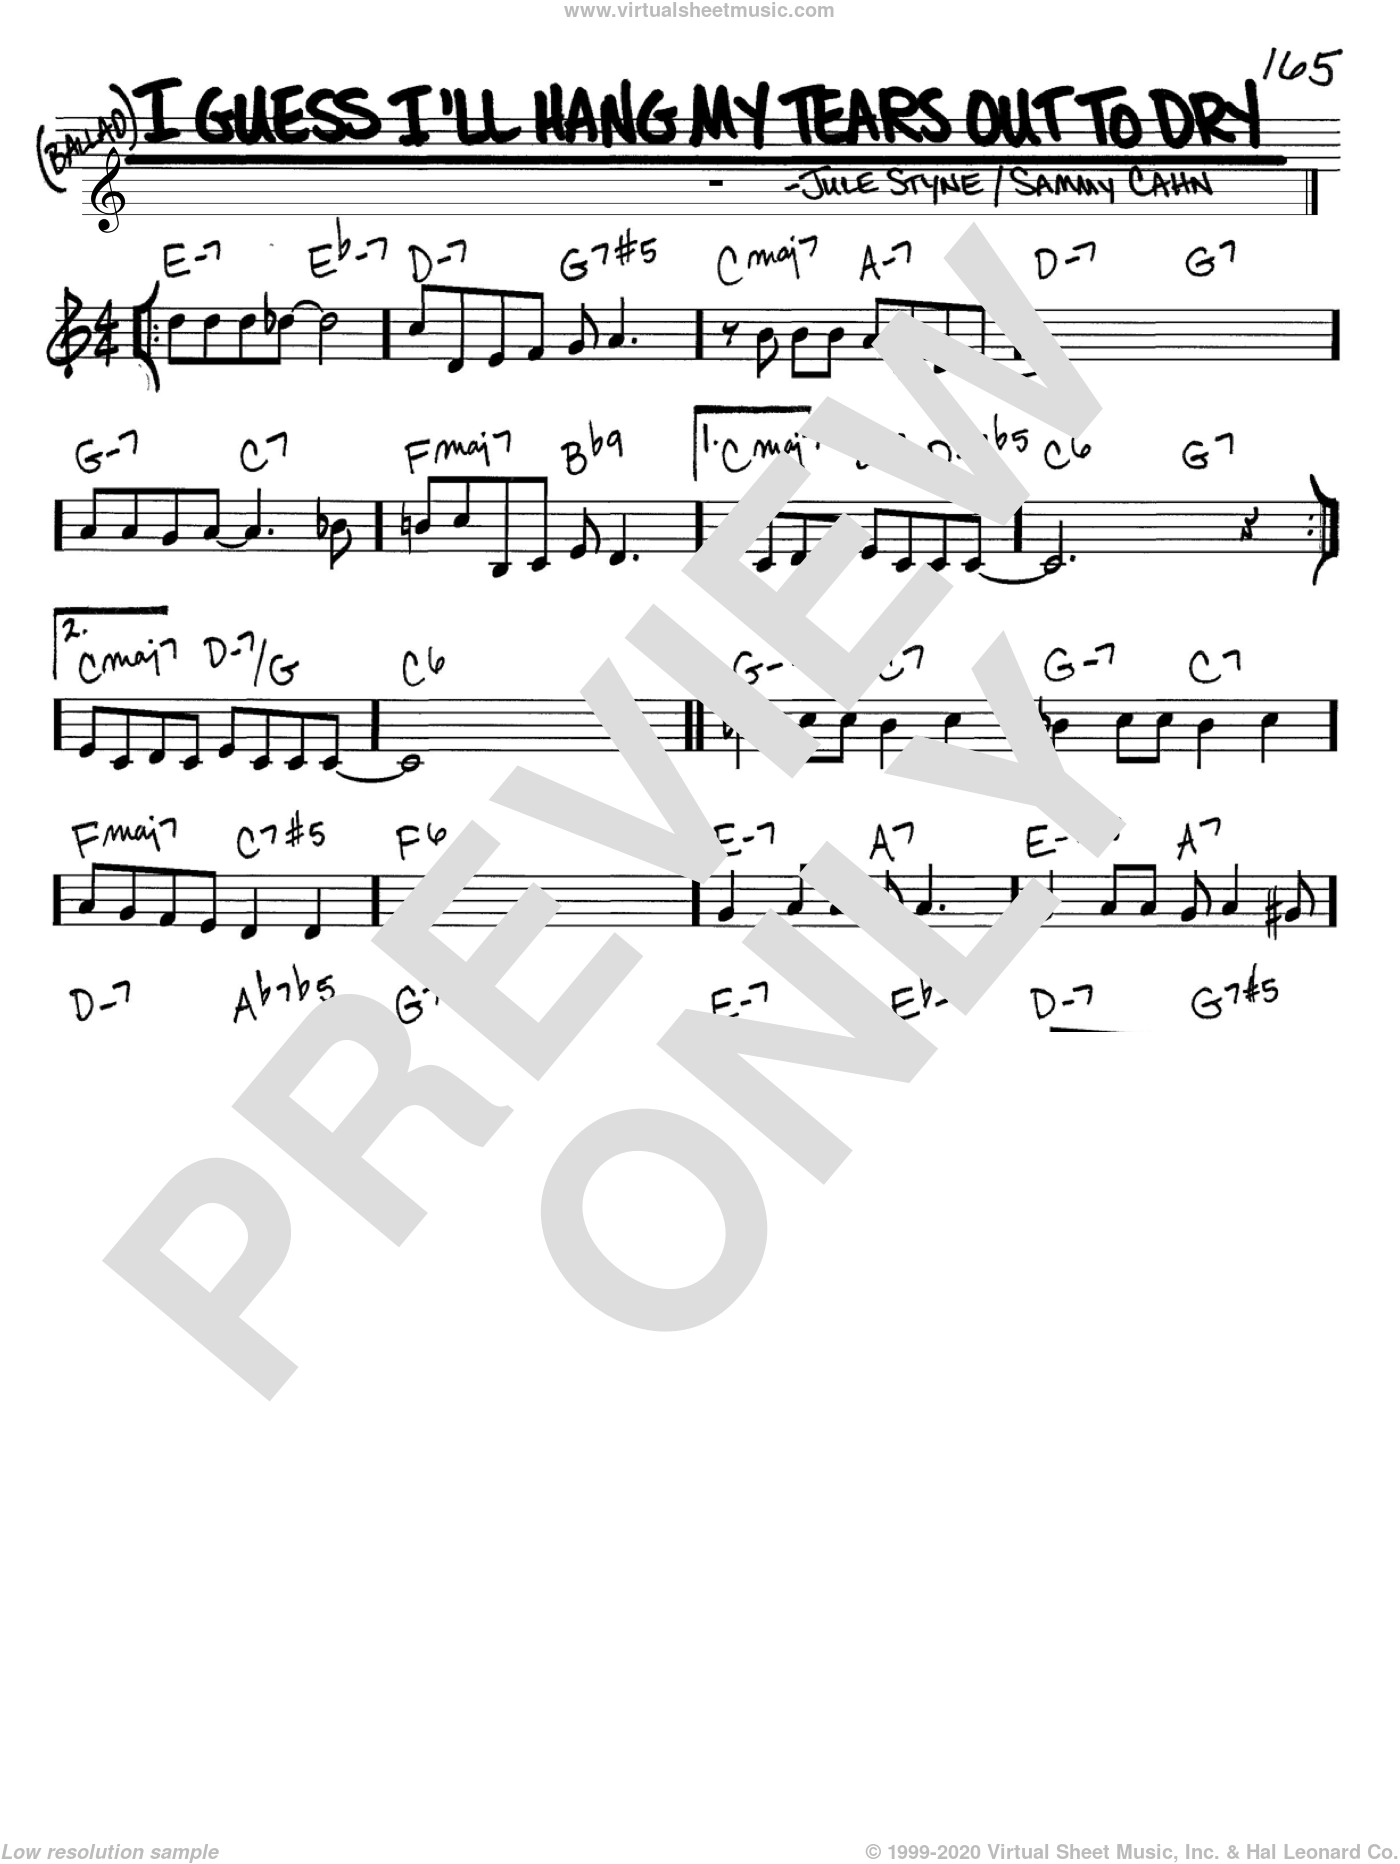 I Guess I'll Hang My Tears Out To Dry sheet music for voice and other instruments (C) by Sammy Cahn, Dexter Gordon and Jule Styne. Score Image Preview.